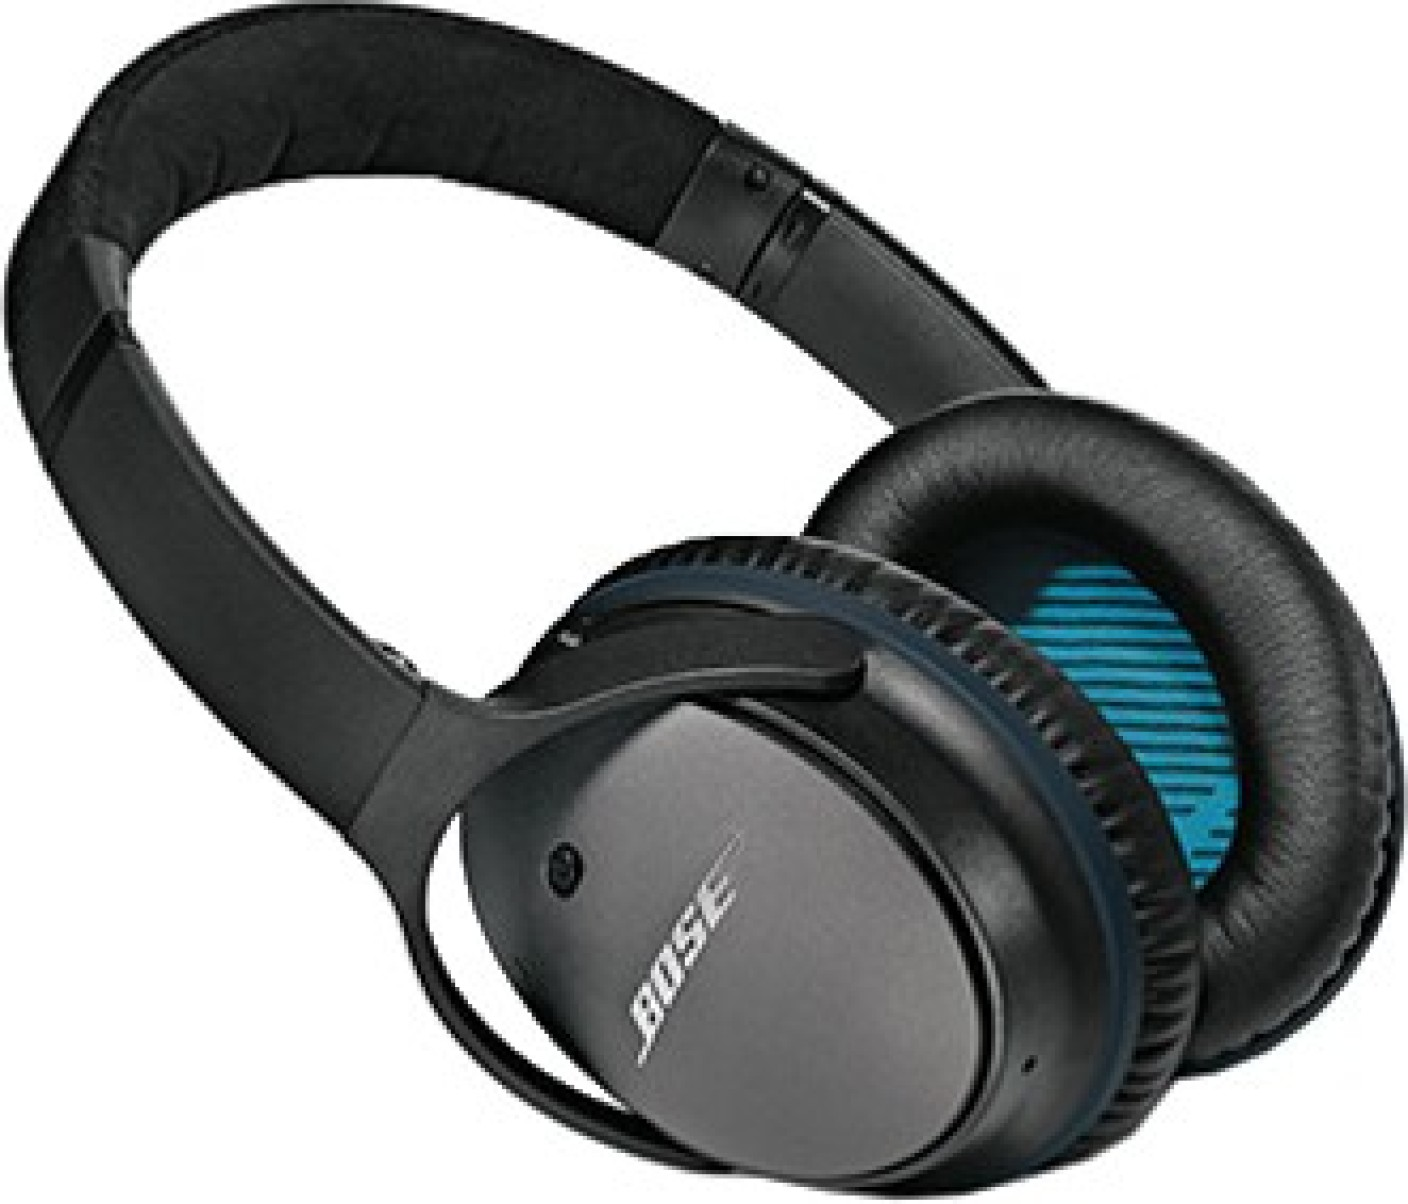 Bose QuietComfort 25 For Samsung/Android Devices Headset With Mic Price In India